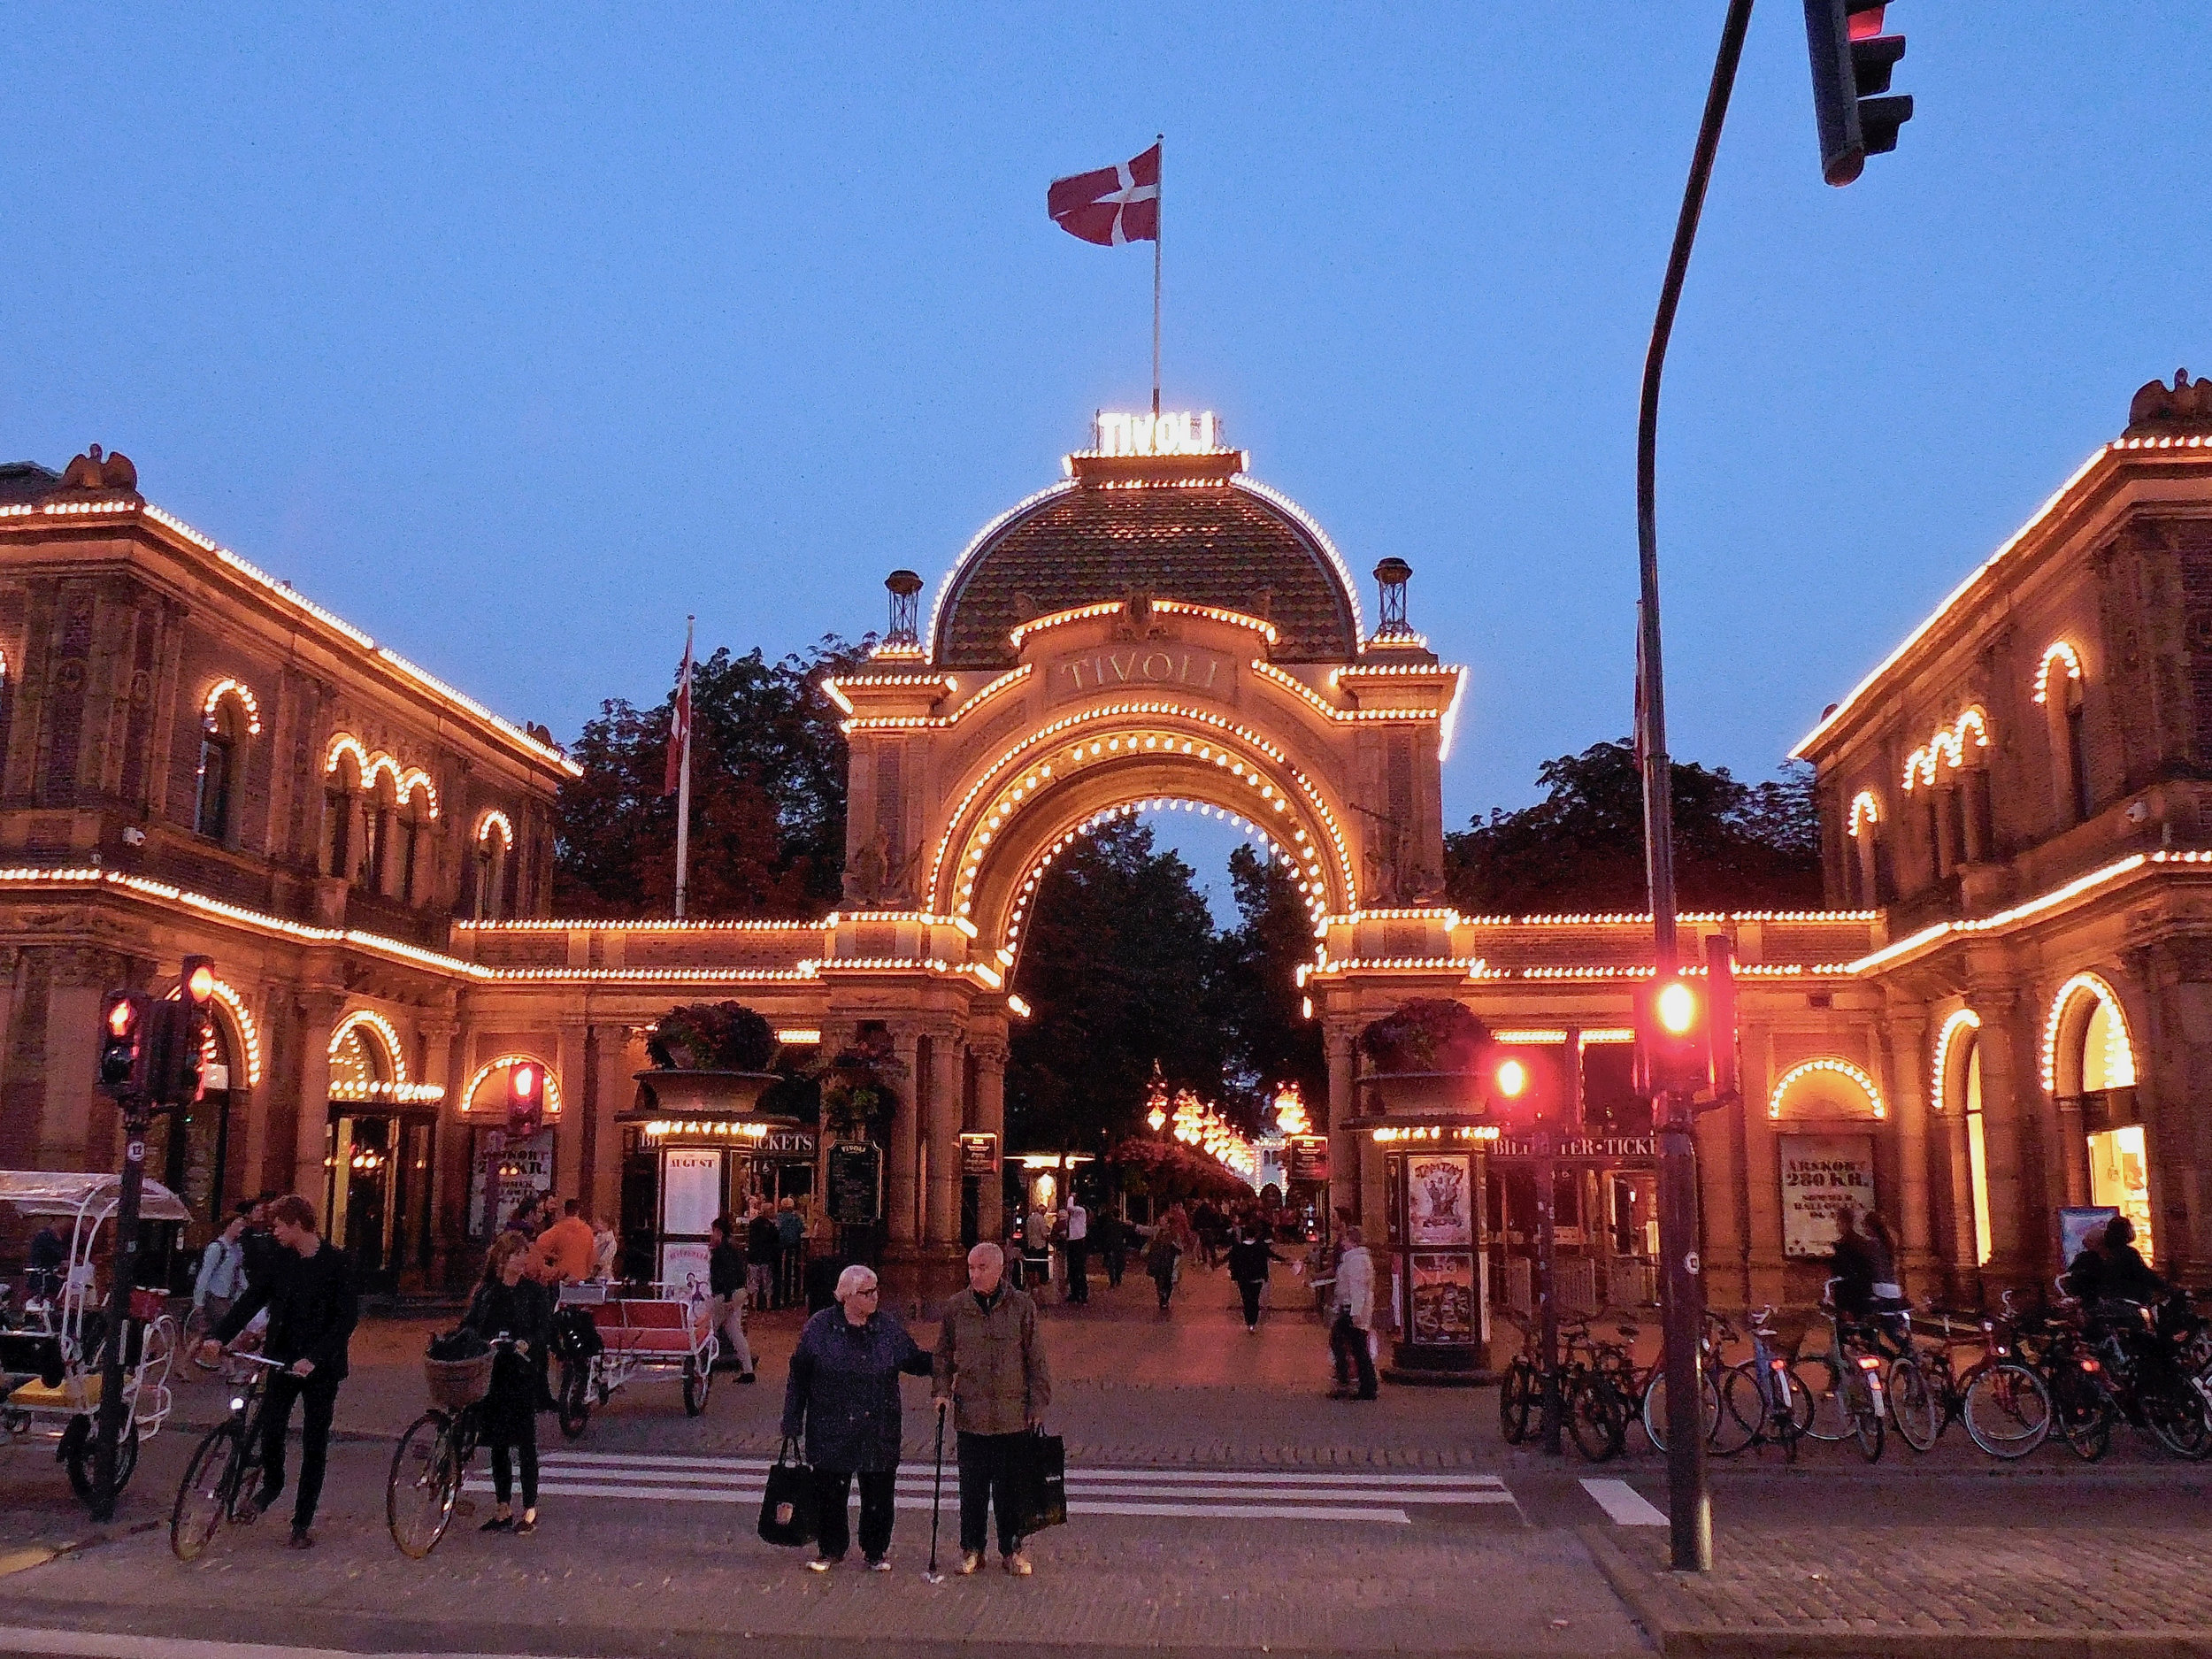 Entrance to Tivoli at night